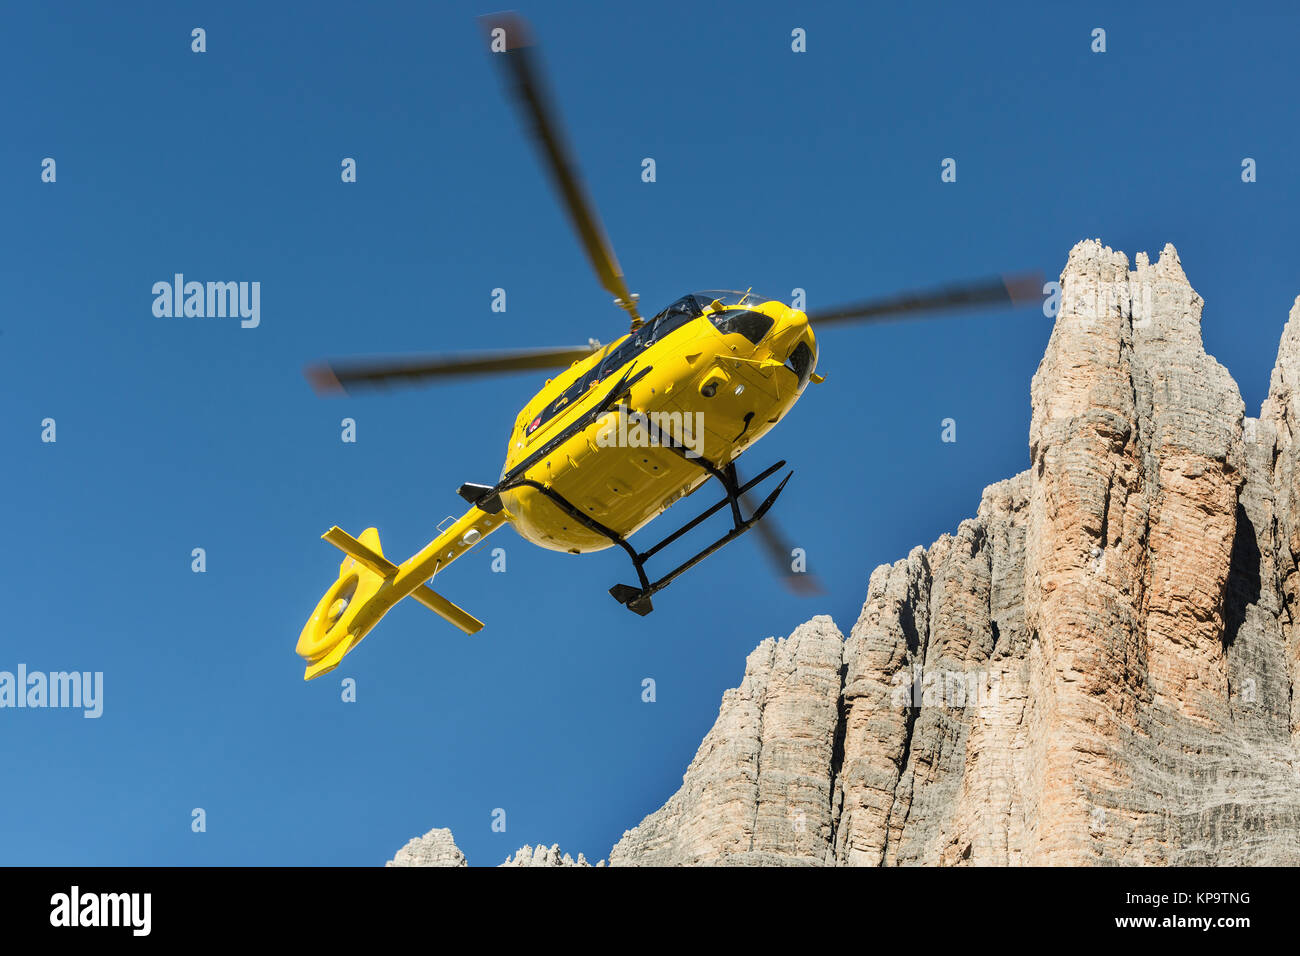 Yellow helicopter used for rescue operations, On the ground